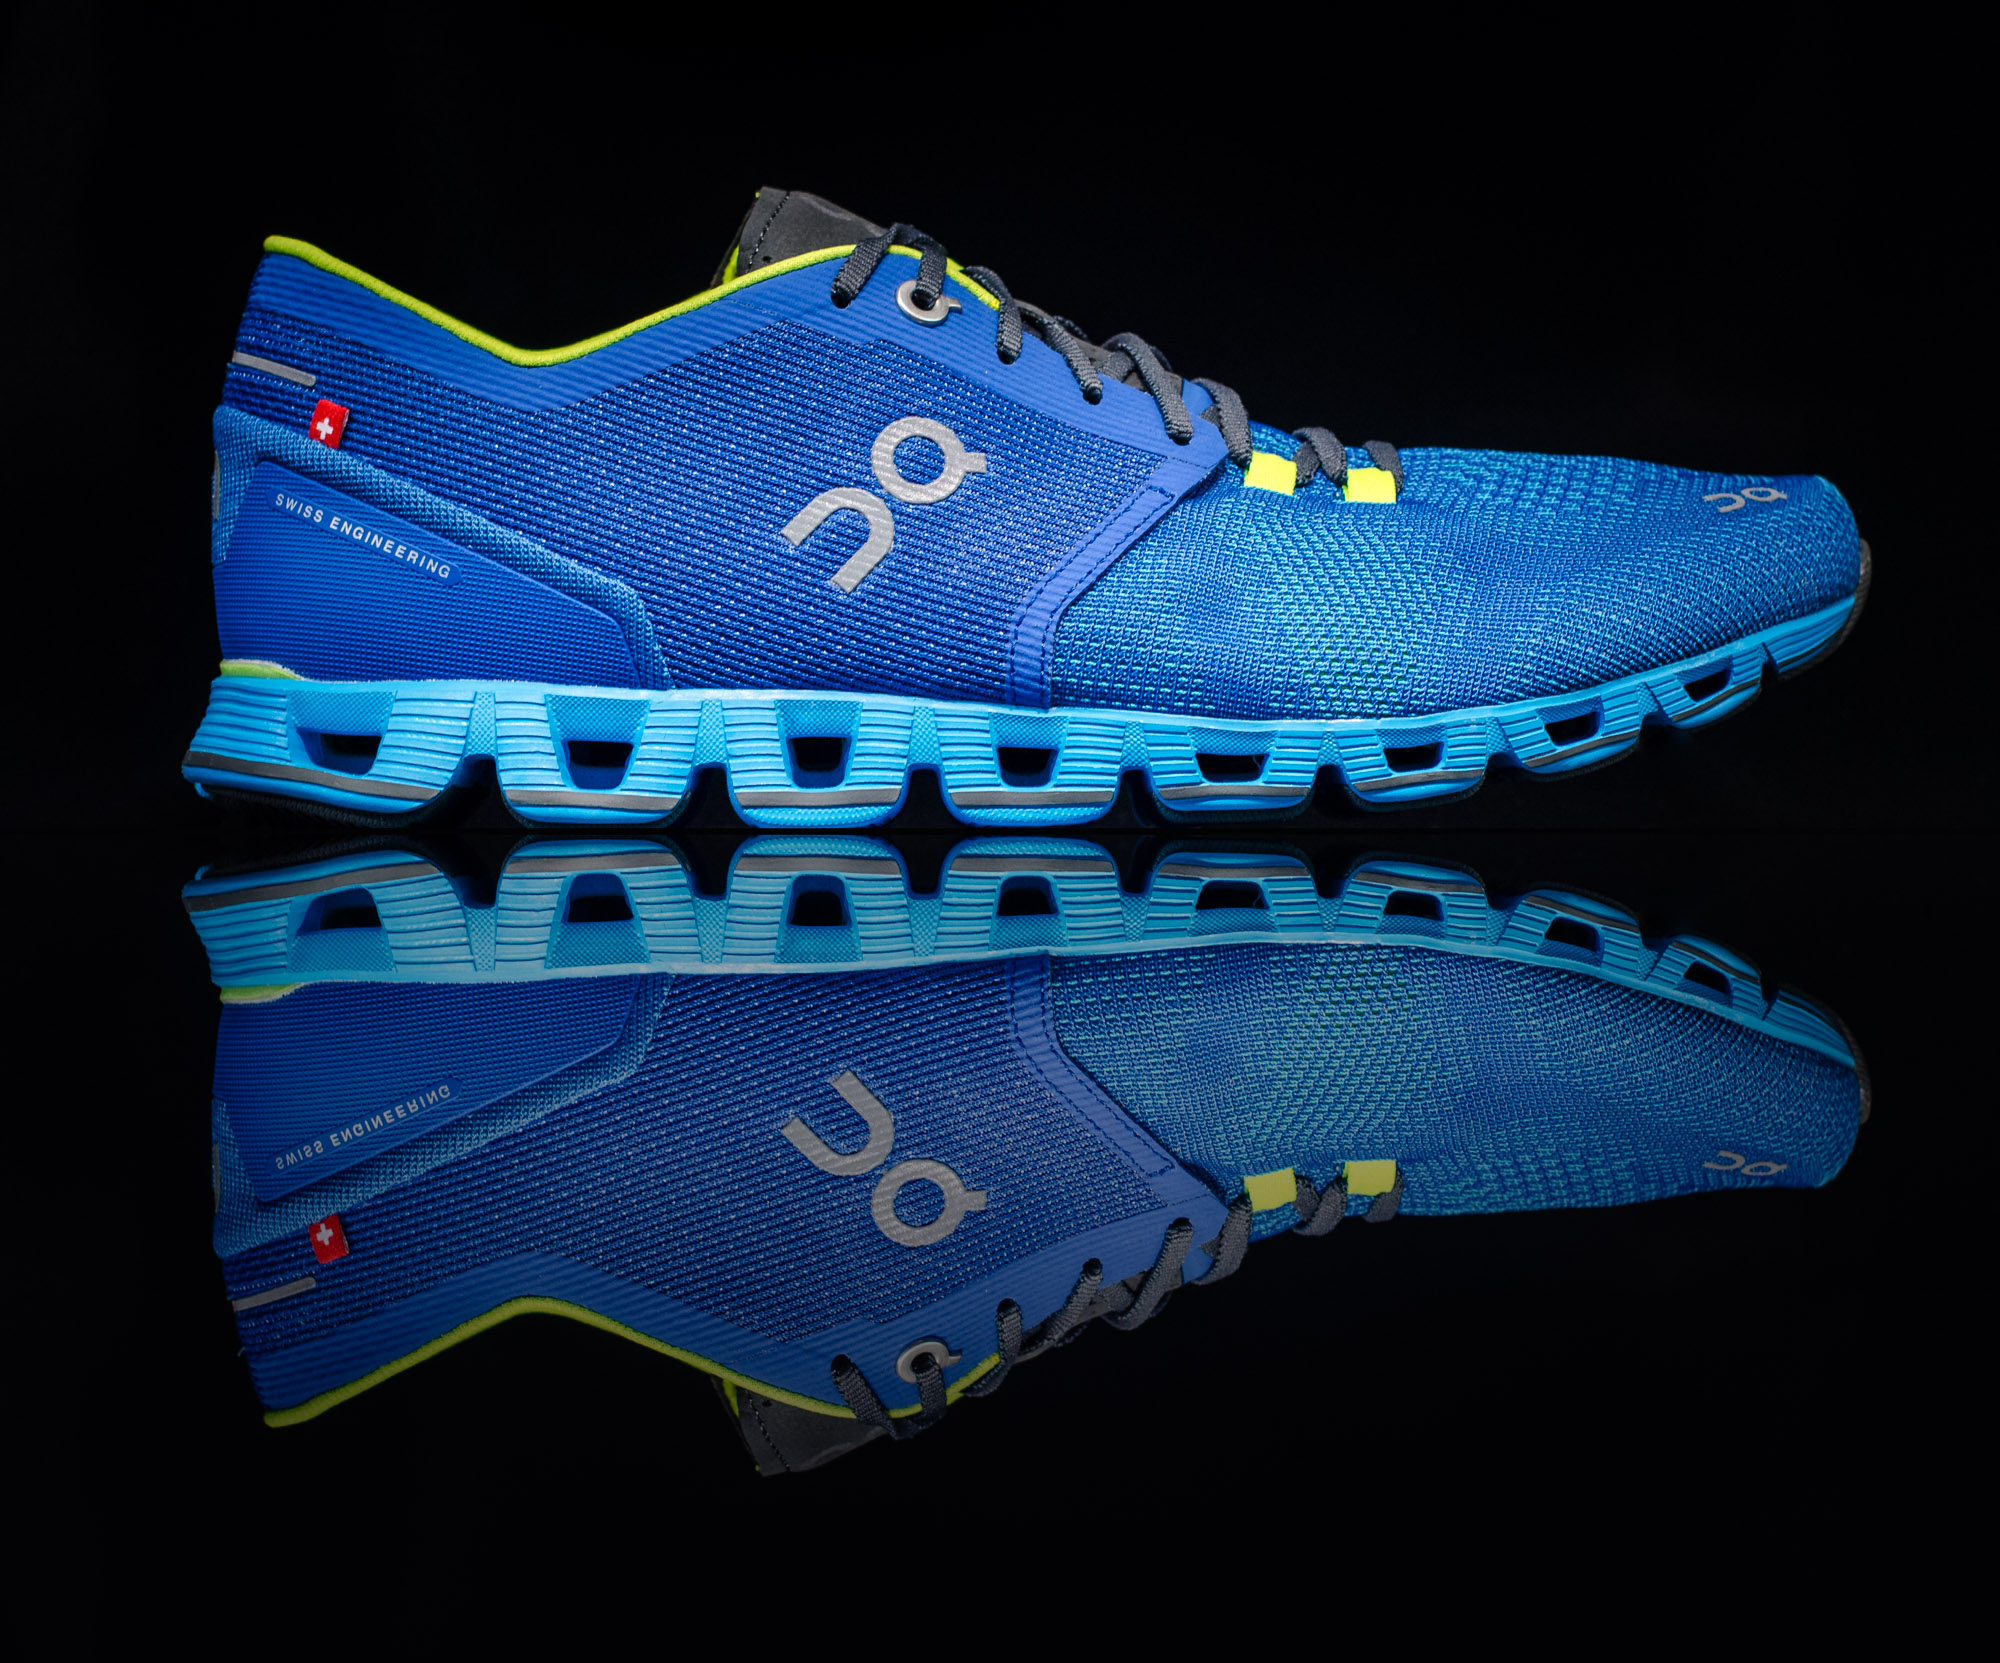 On Cloud Running Shoe - studio fotografie :: foto-rv